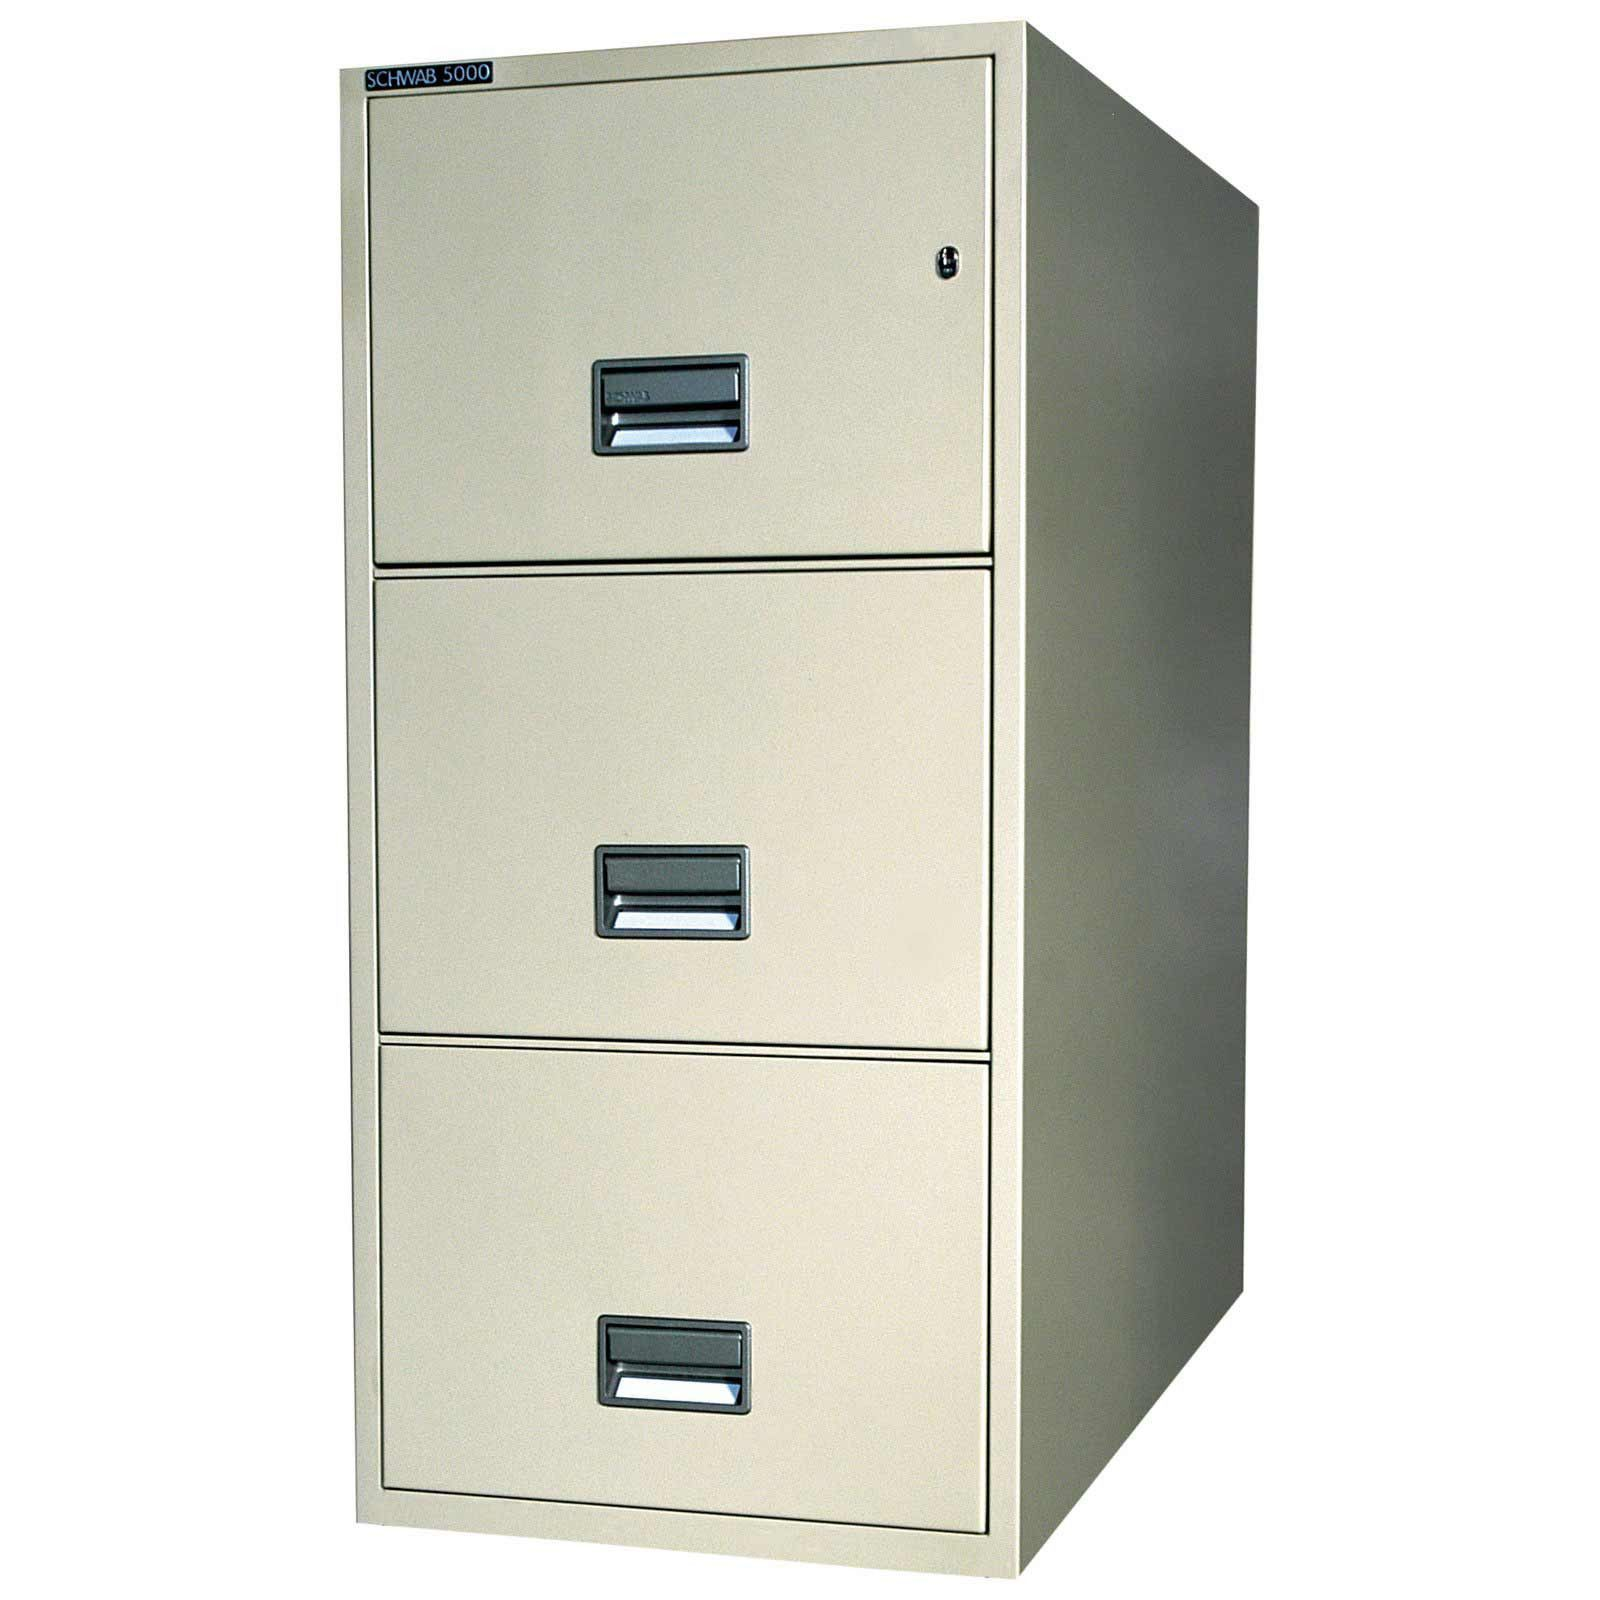 77 3 Drawer Vertical Metal File Cabinet Small Kitchen Island Ideas With Seating Check